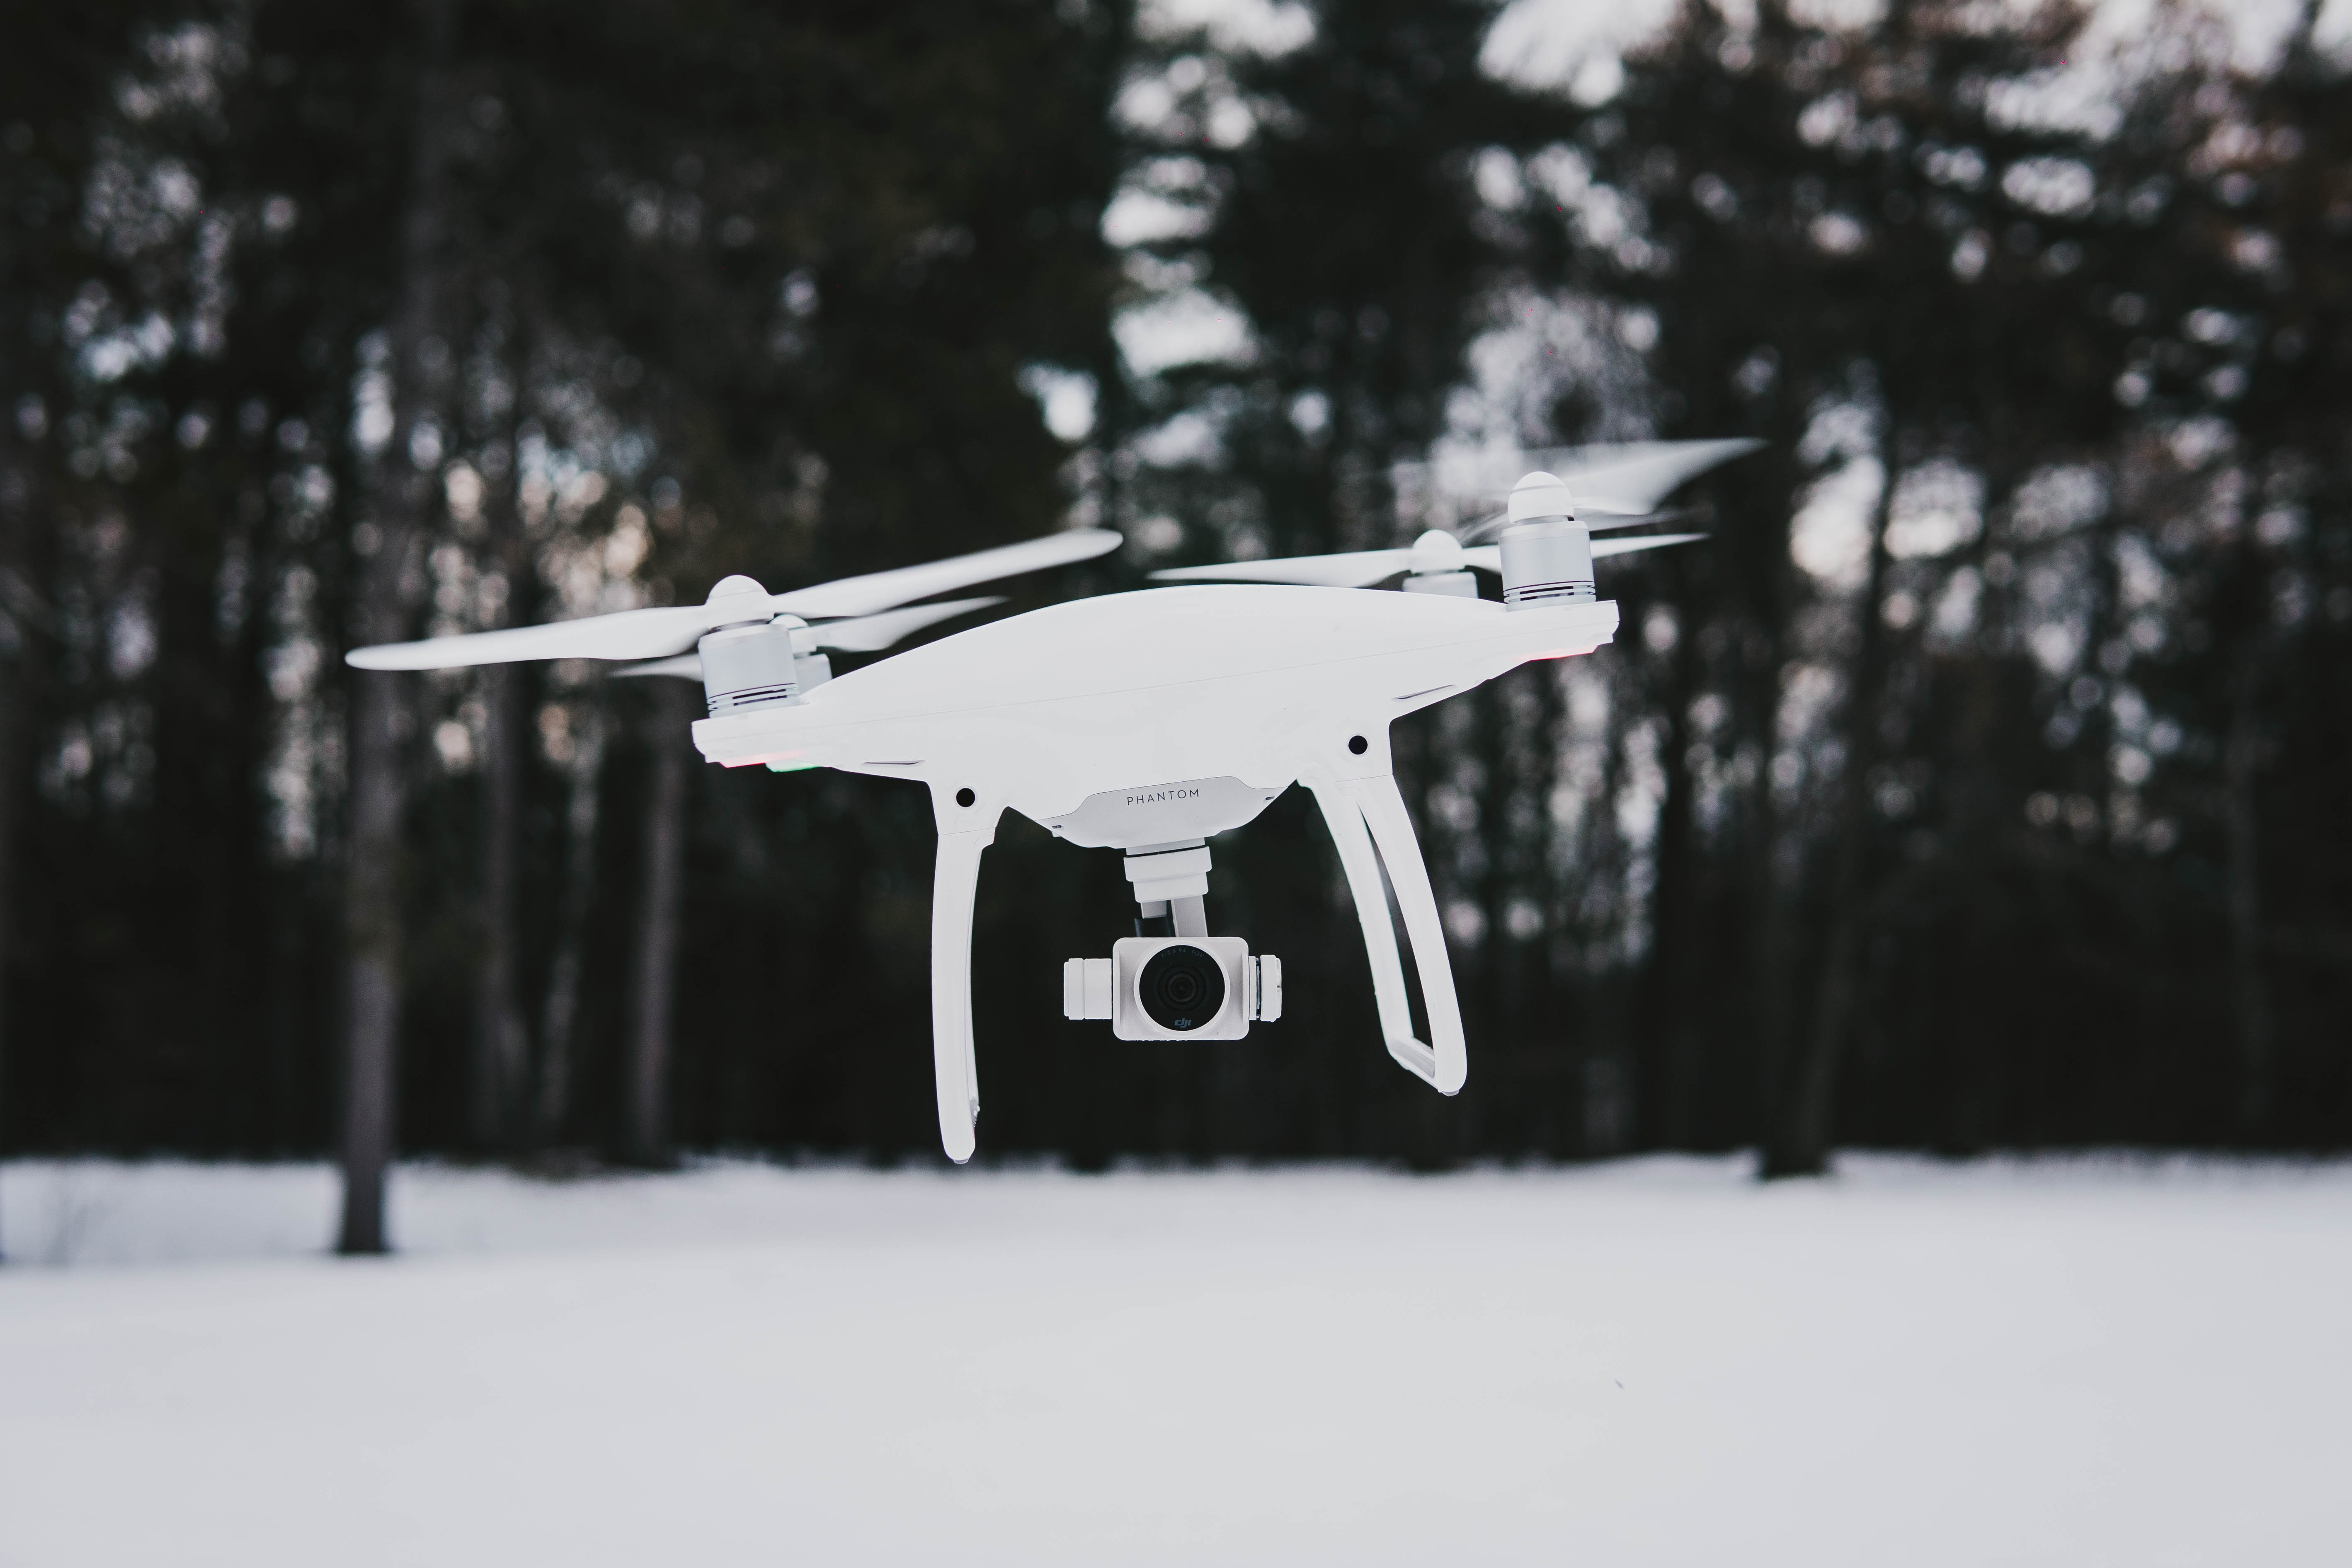 flying quadcopter drone near trees during winter